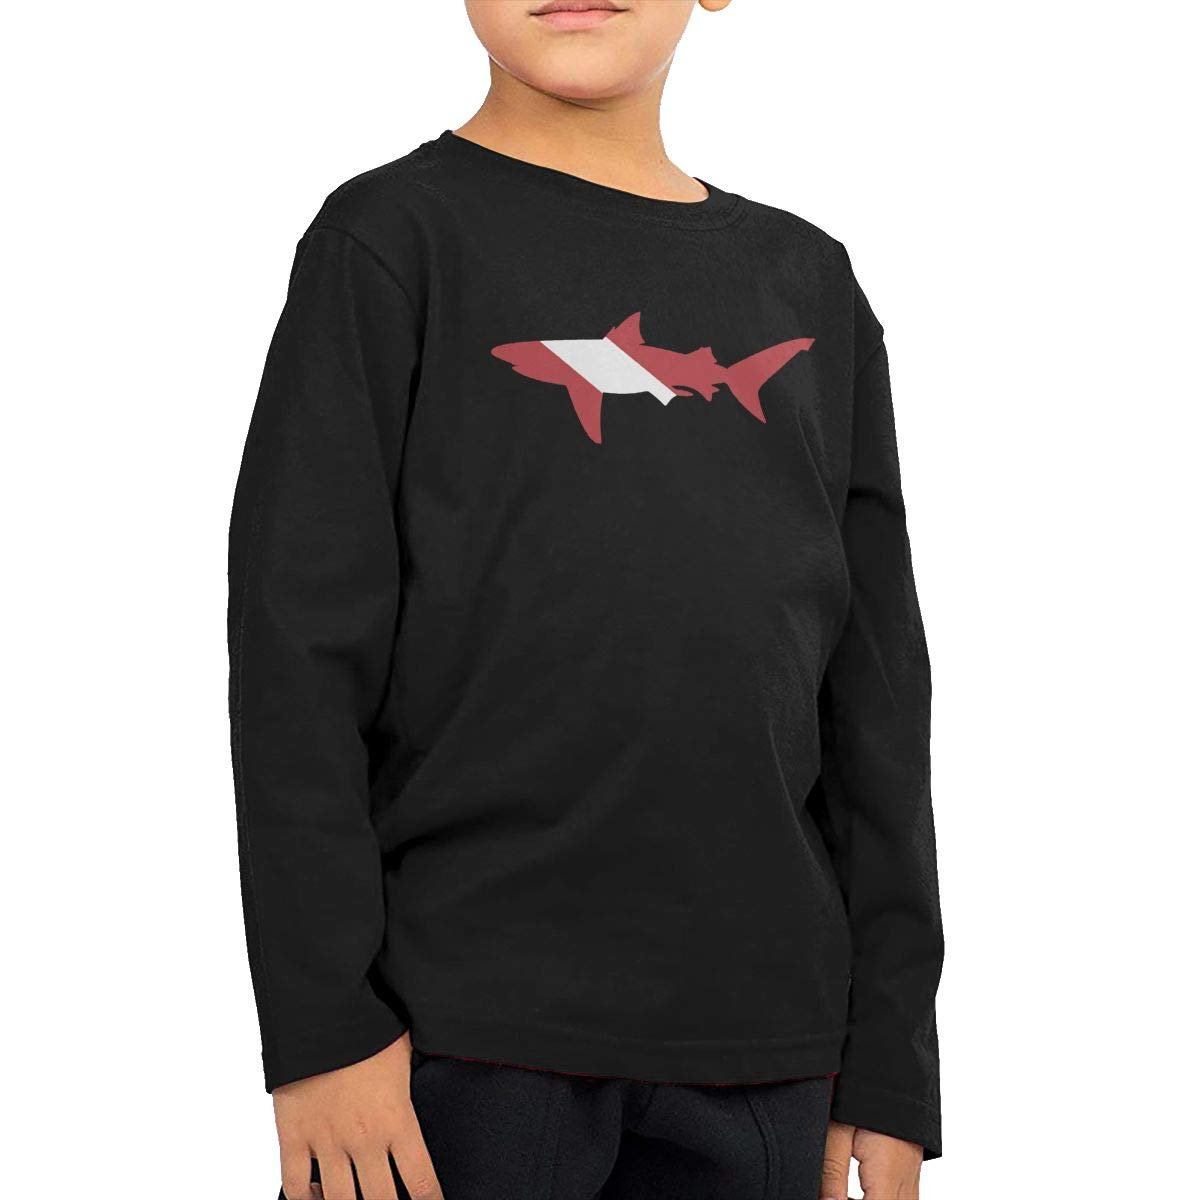 Toddler Childrens Shark Scuba Diving Flag Printed Long Sleeve 100/% Cotton Infants Tops